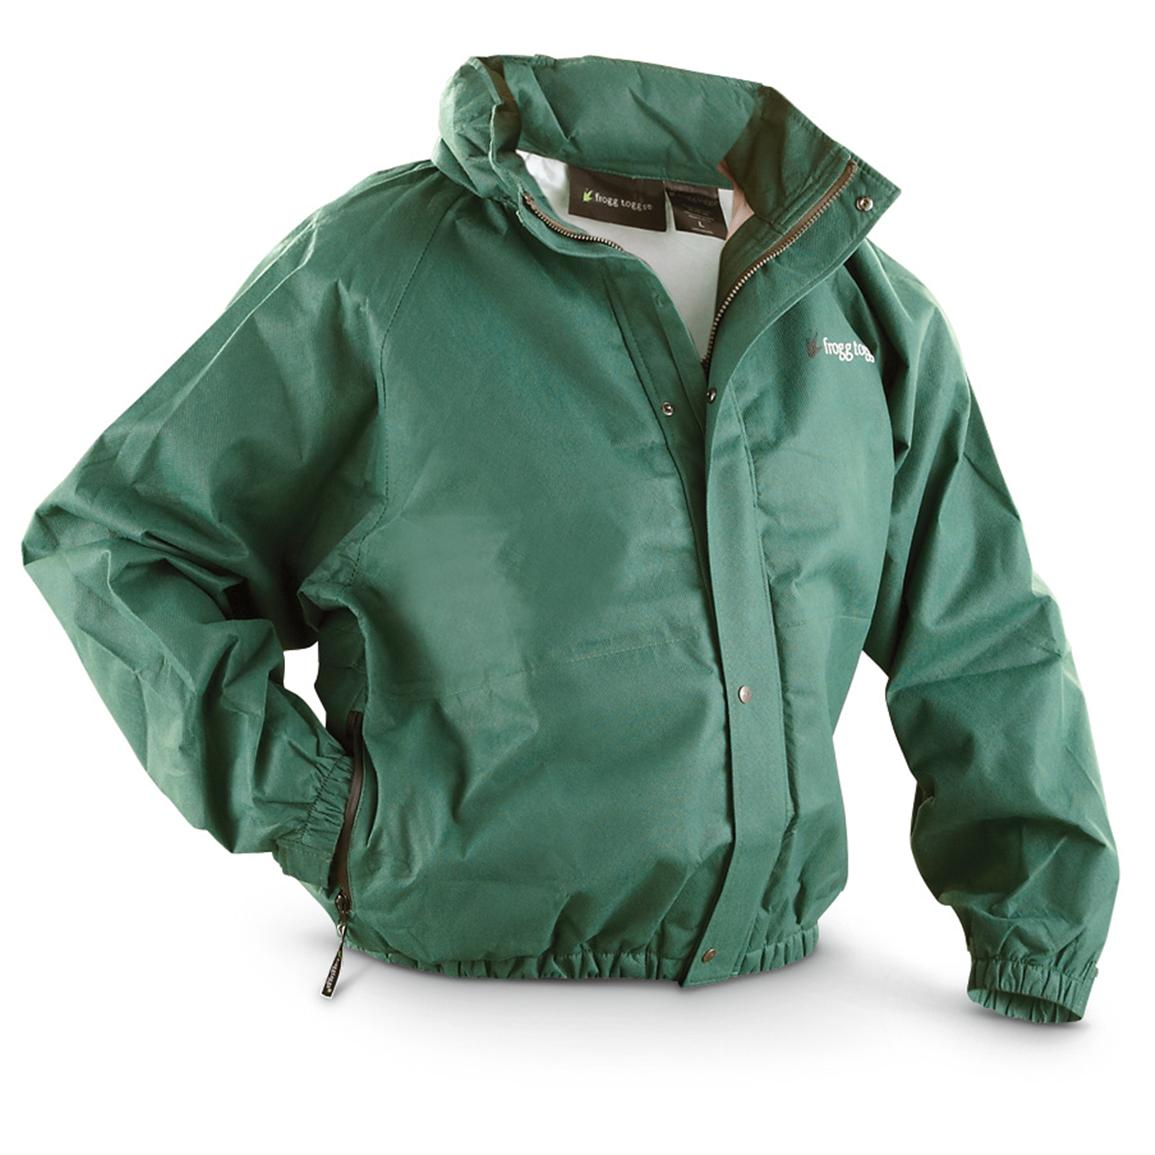 frogg toggs® Bull frogg™ Waterproof Breathable Jacket, Green